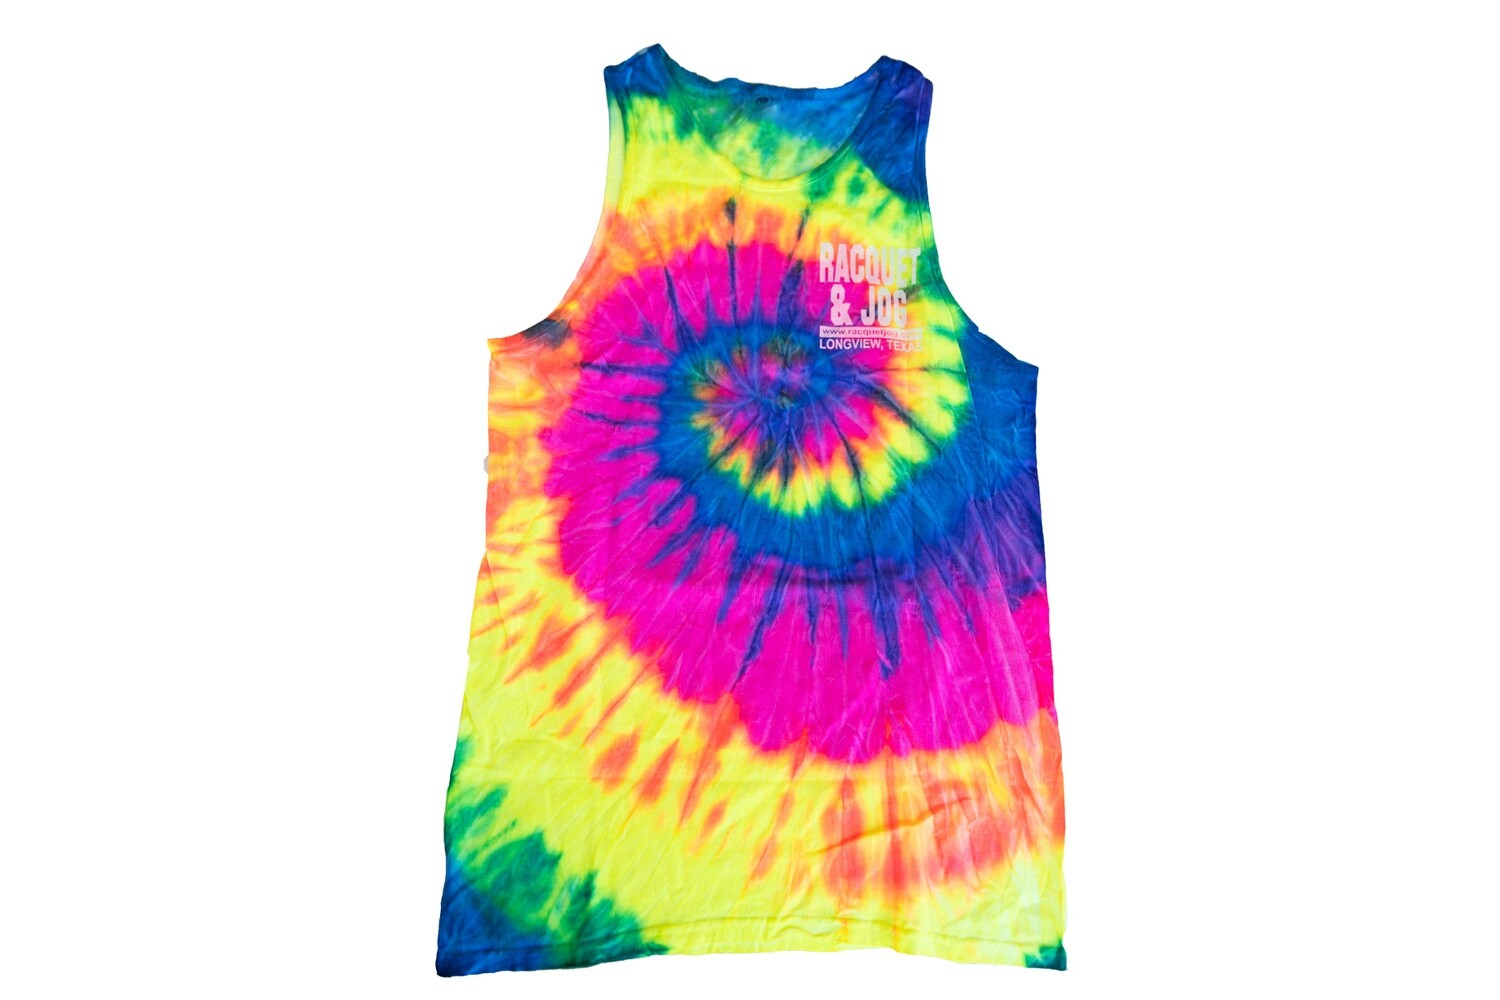 Racquet & Jog Old School Fashion Tie Dye Tank